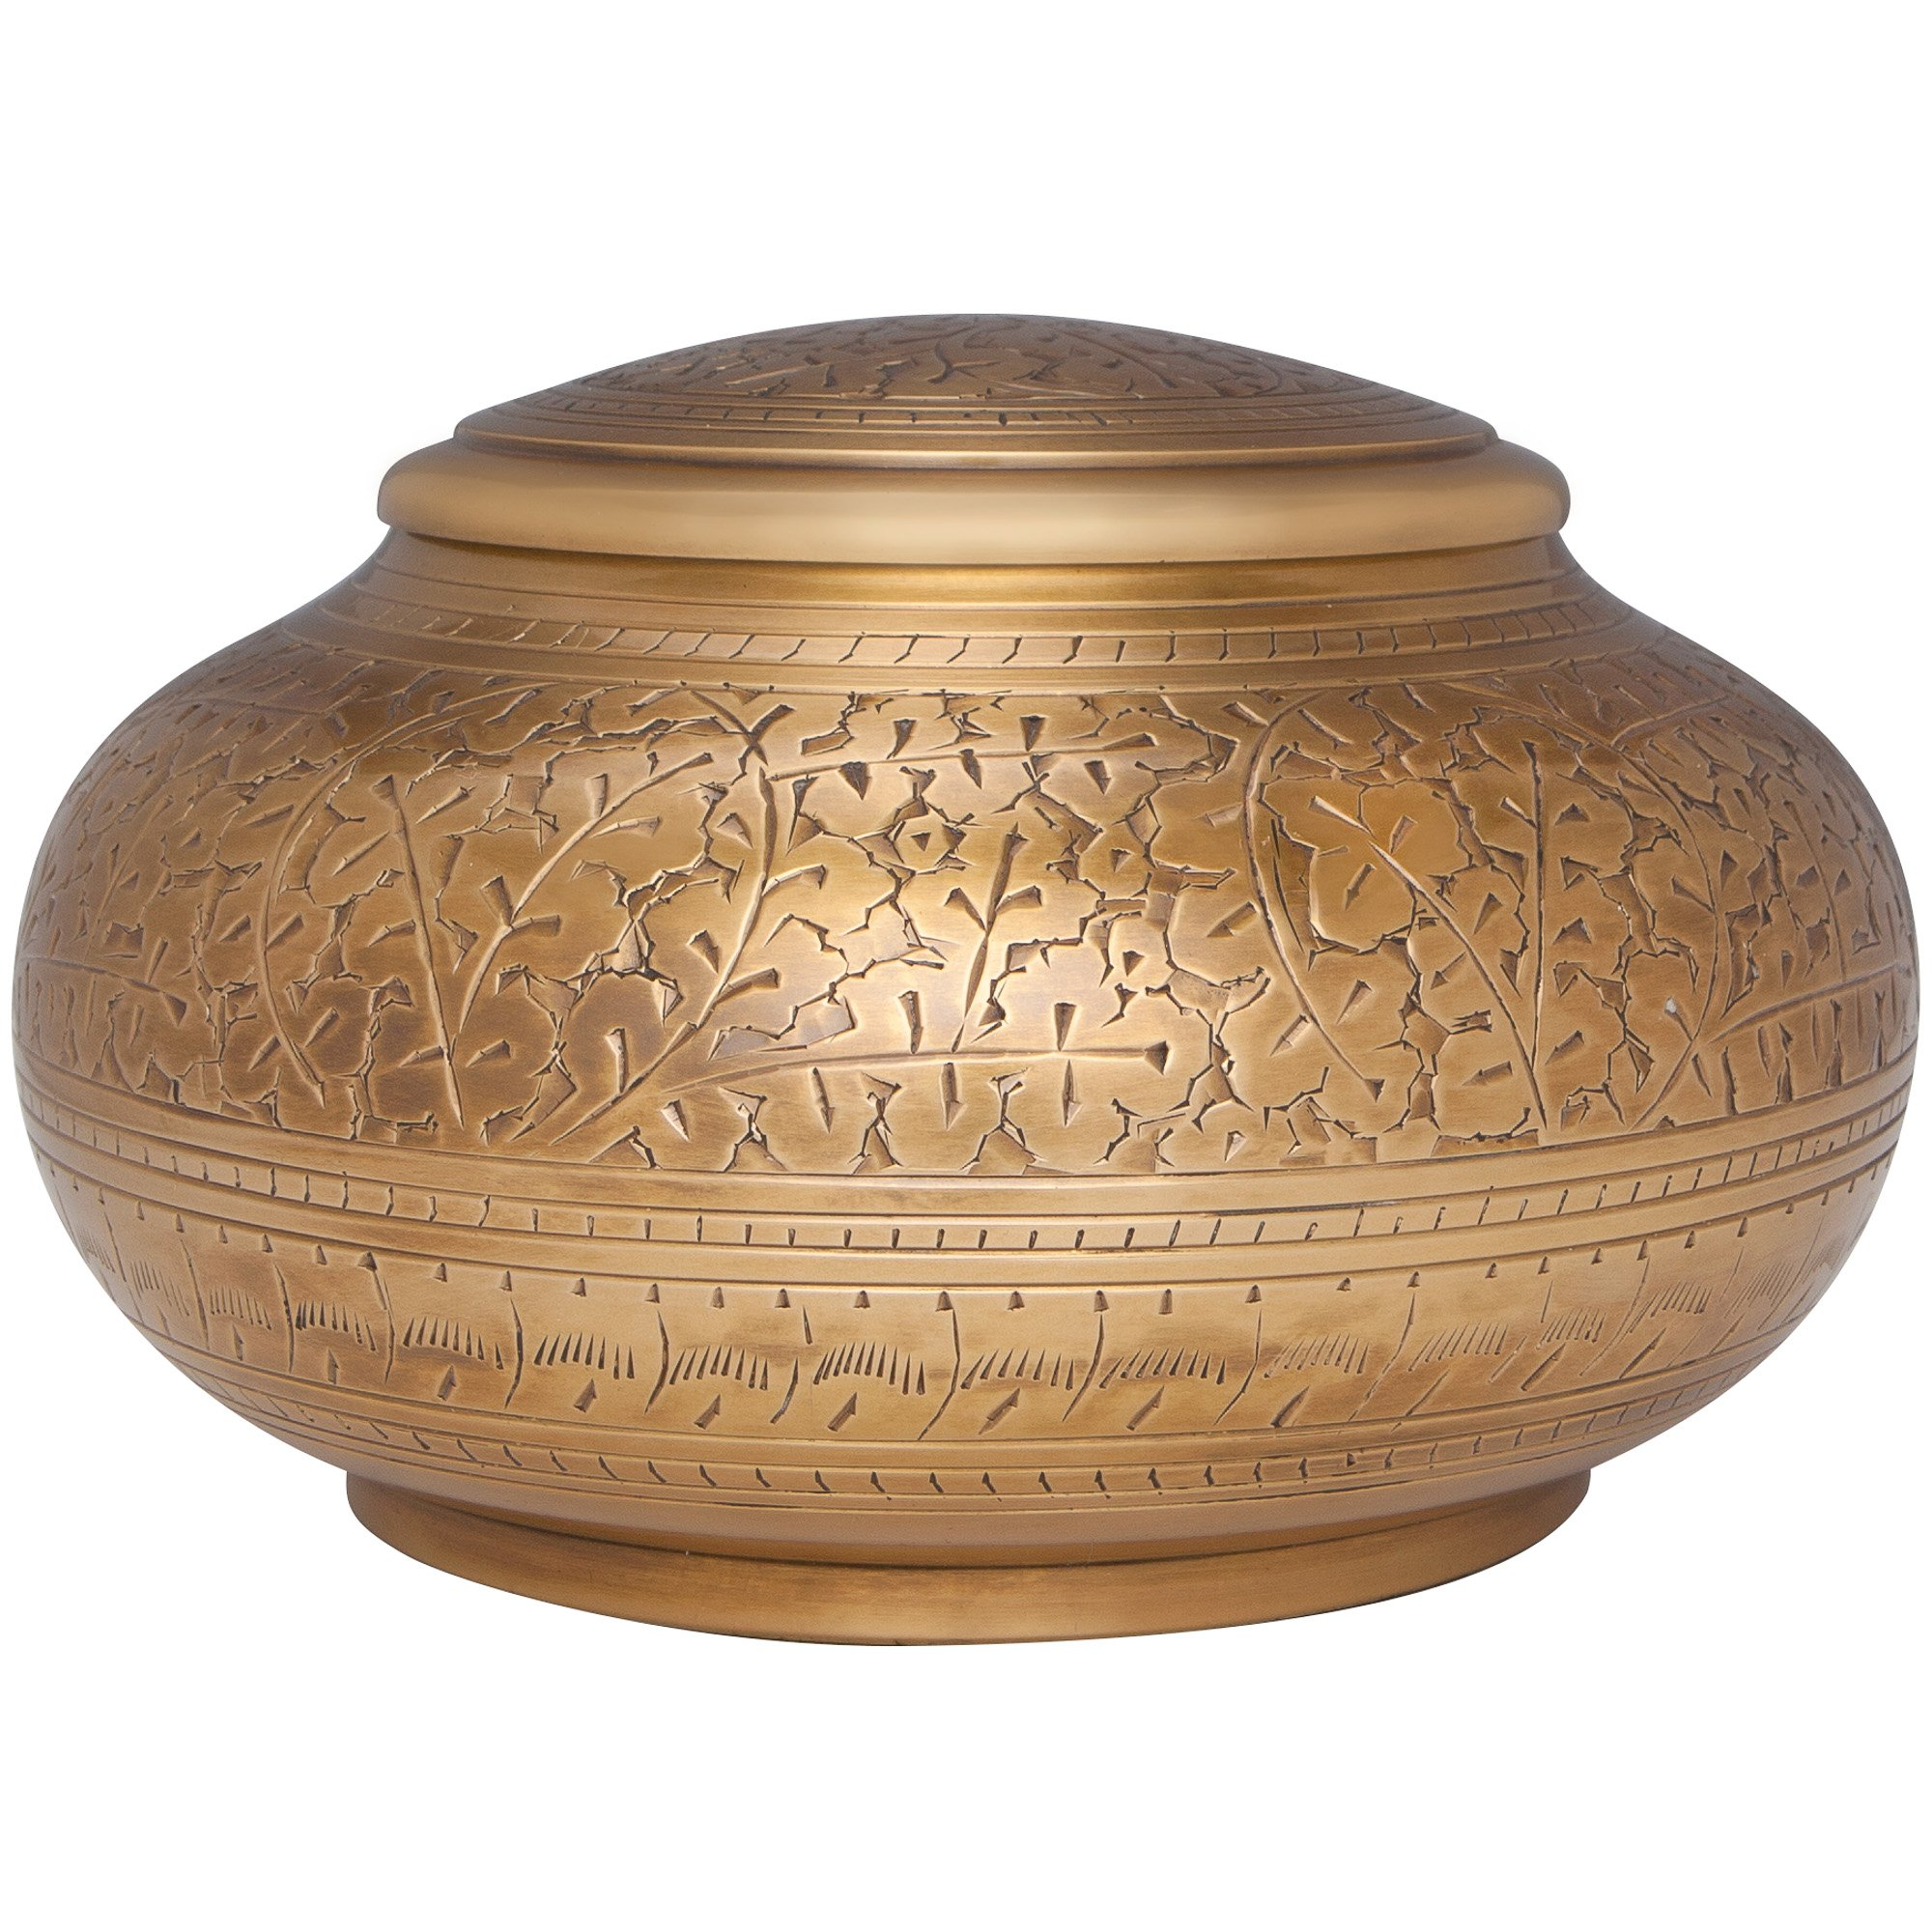 Bronze Antique Brass Funeral Urn by Liliane Memorials - Cremation Urn for Human Ashes - Hand Made in Brass - Suitable for Cemetery Burial or Niche - Large Size fits remains of Adults up to 110 lbs